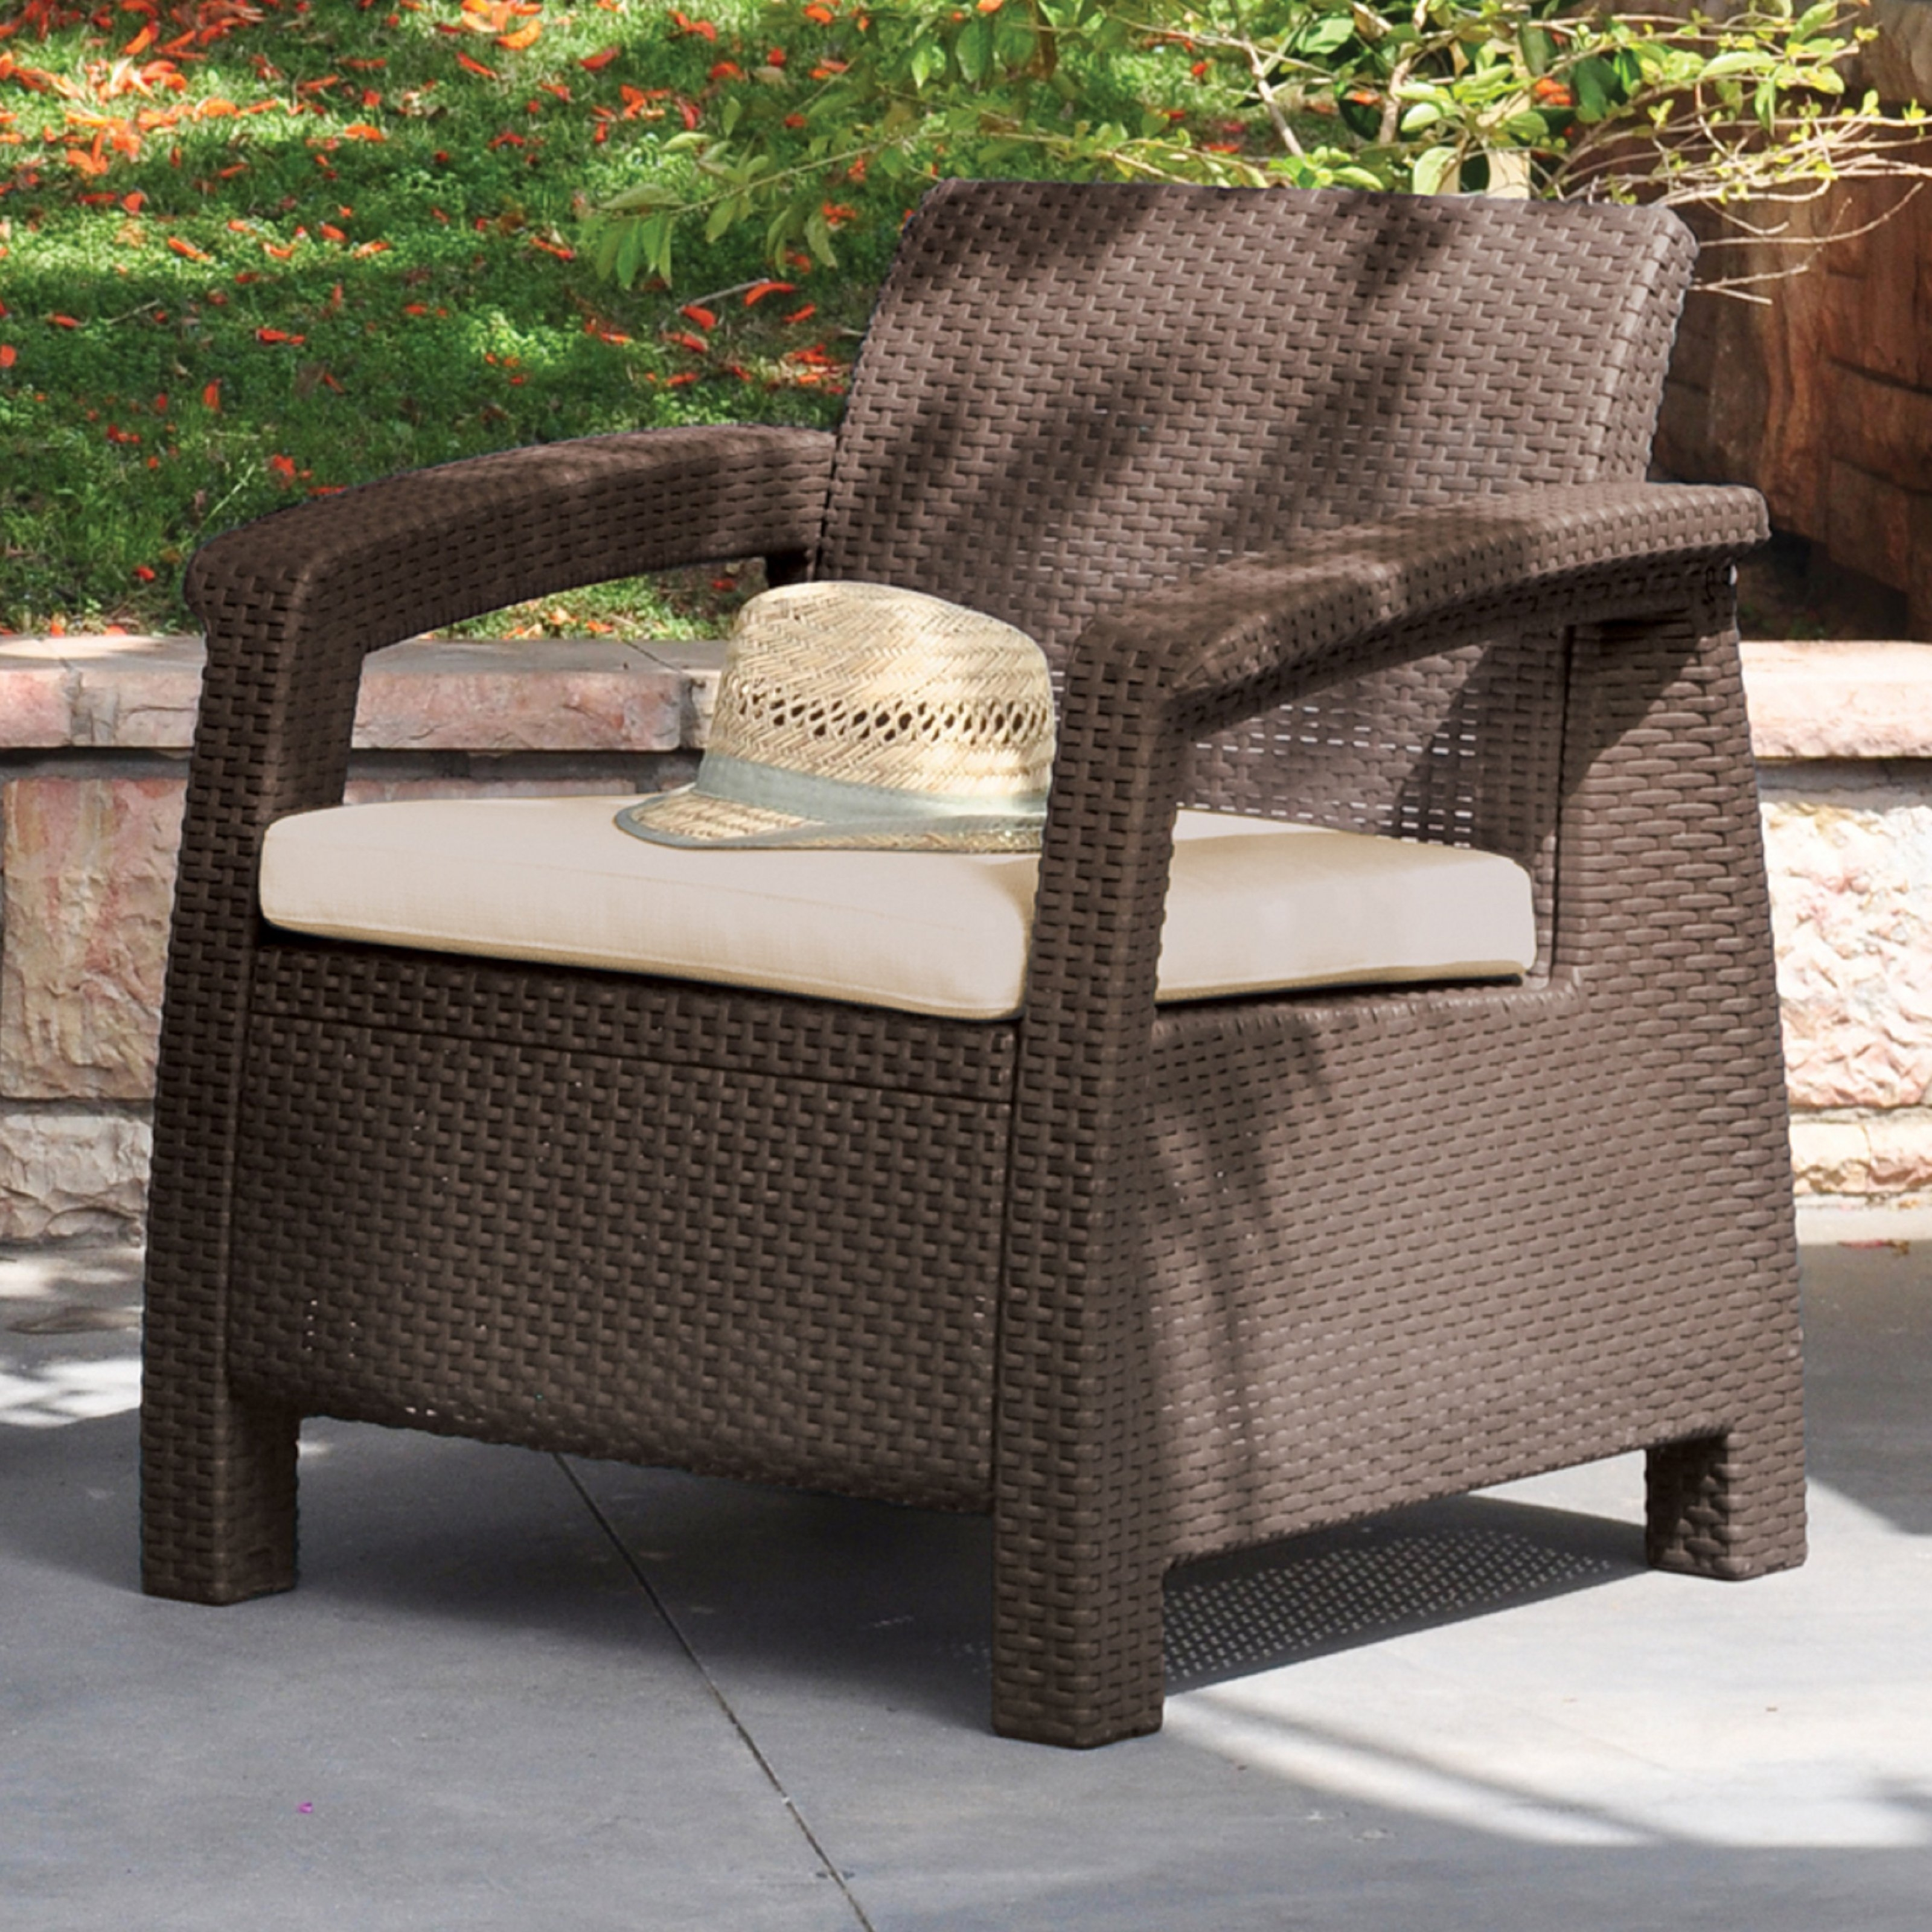 Hayneedle Within Famous Keter Chaise Lounge Chairs (View 9 of 15)